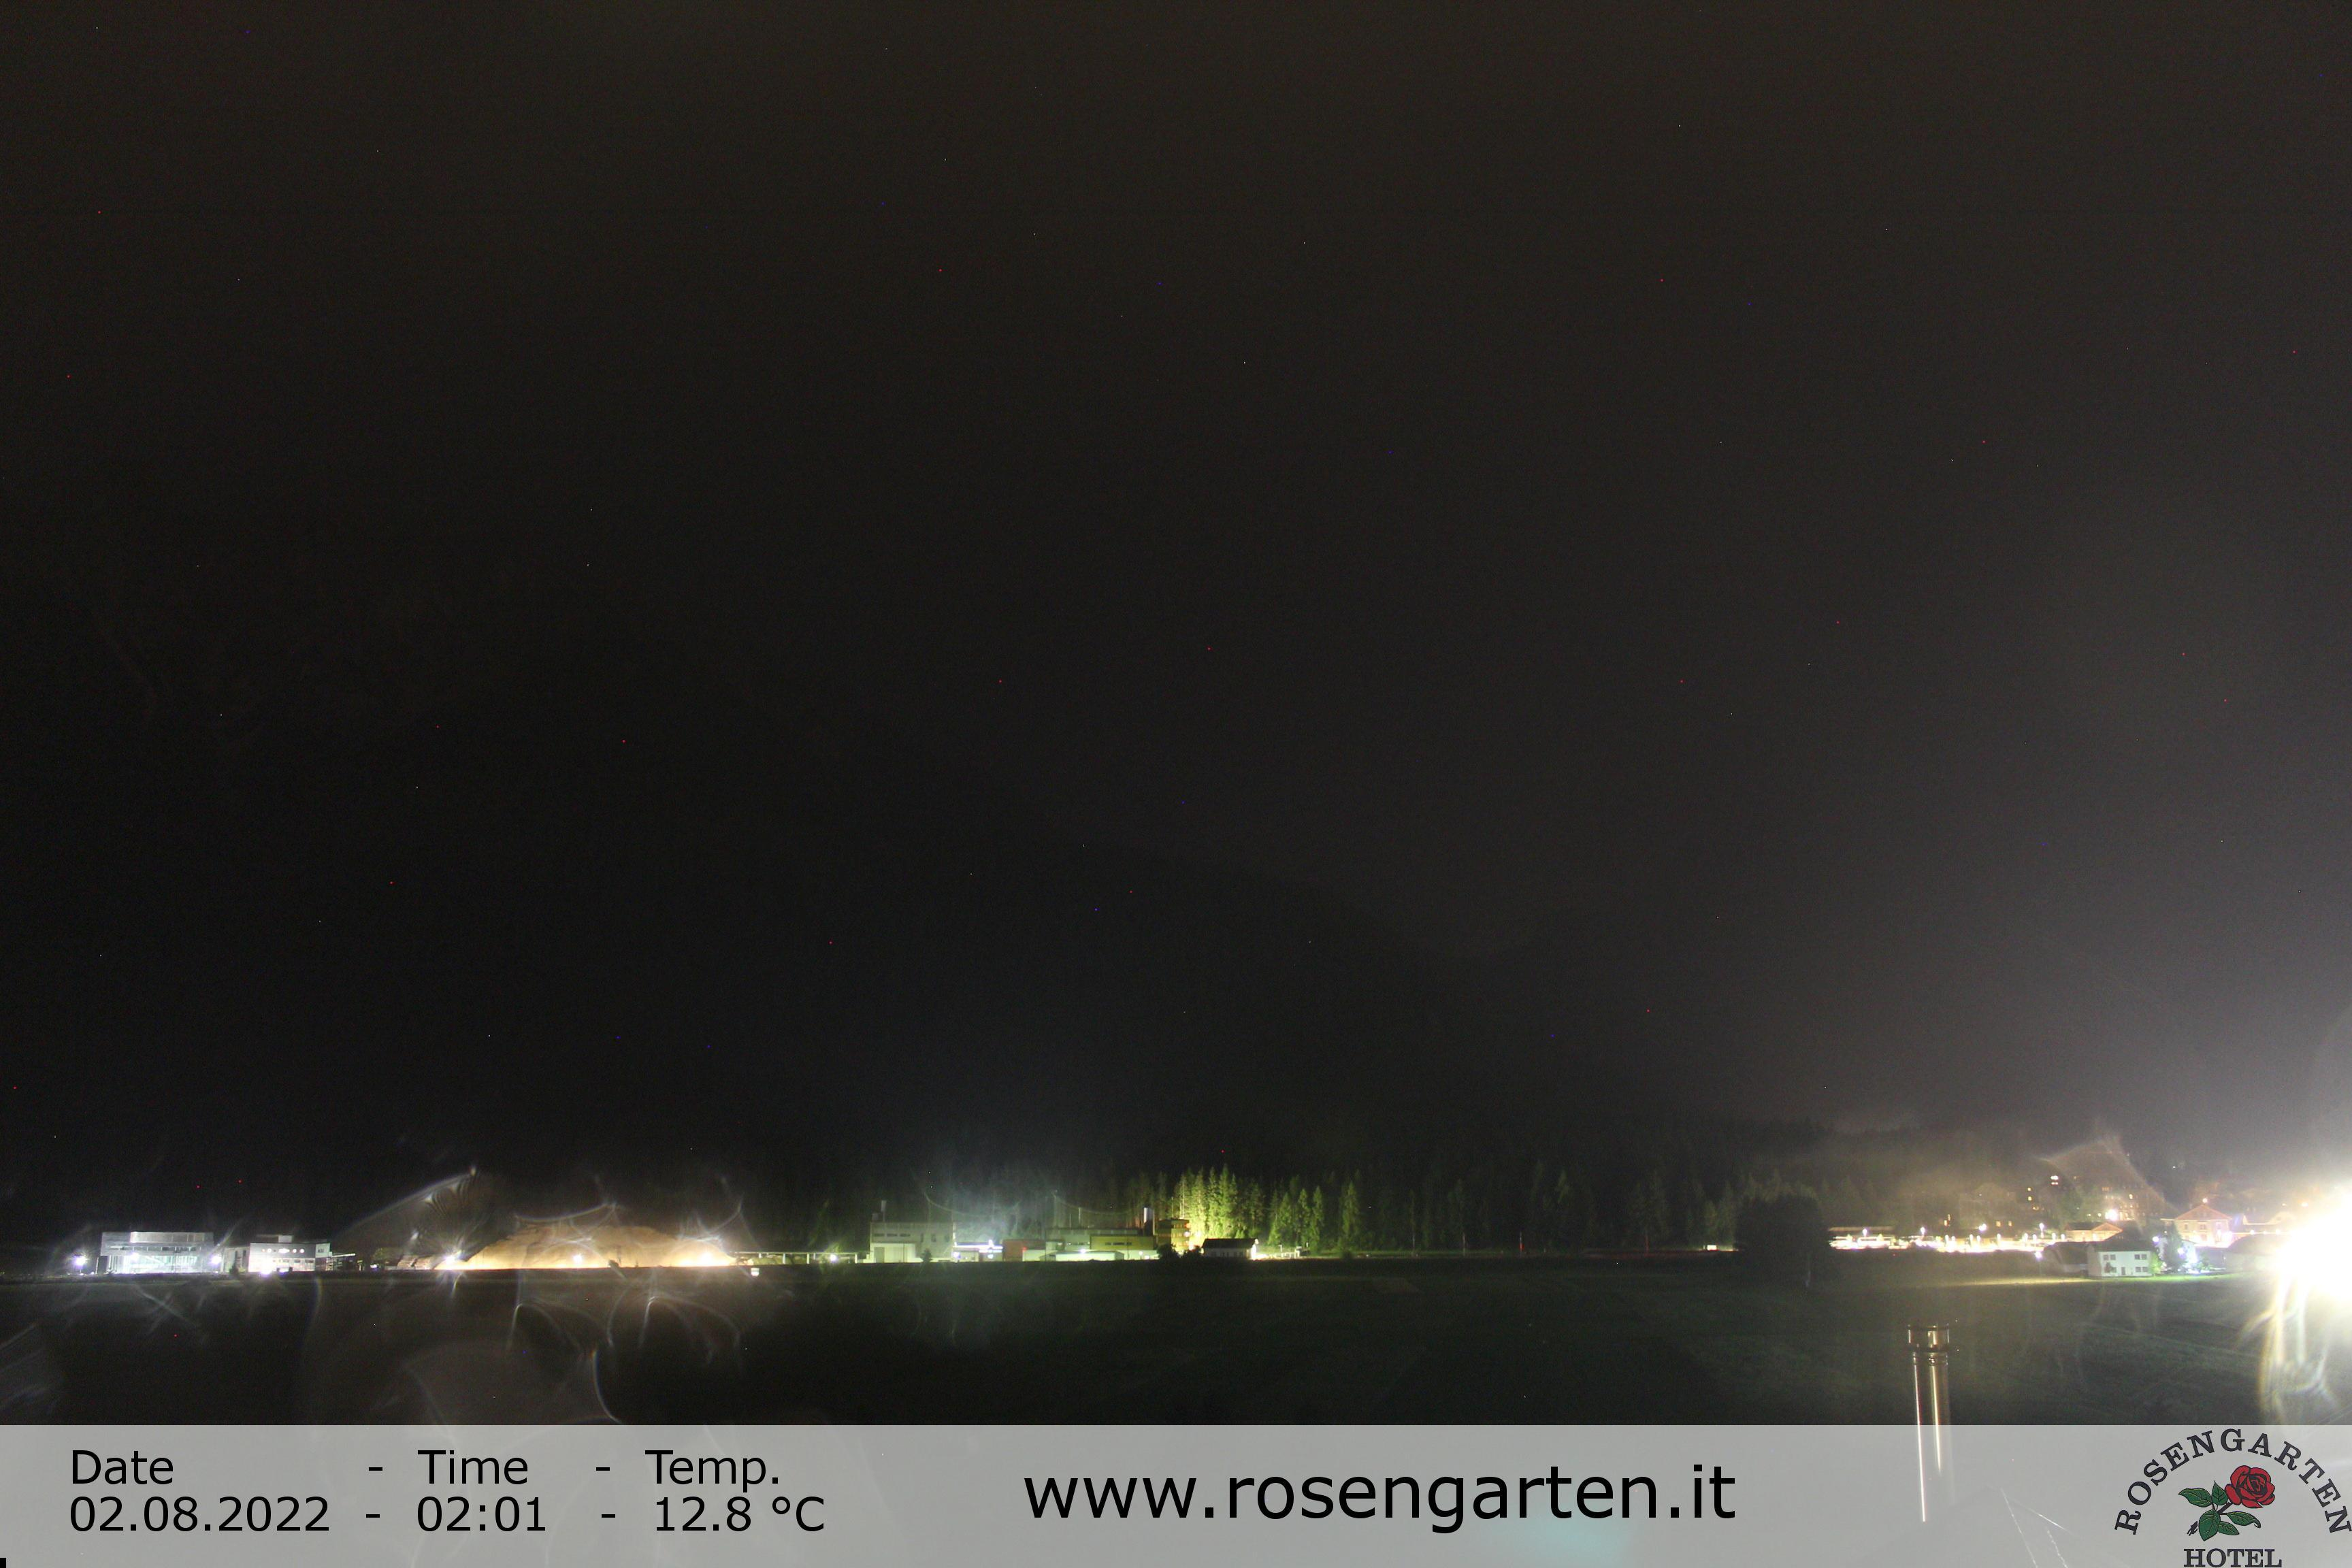 Toblach (Dolomites) - View of the Dolomites